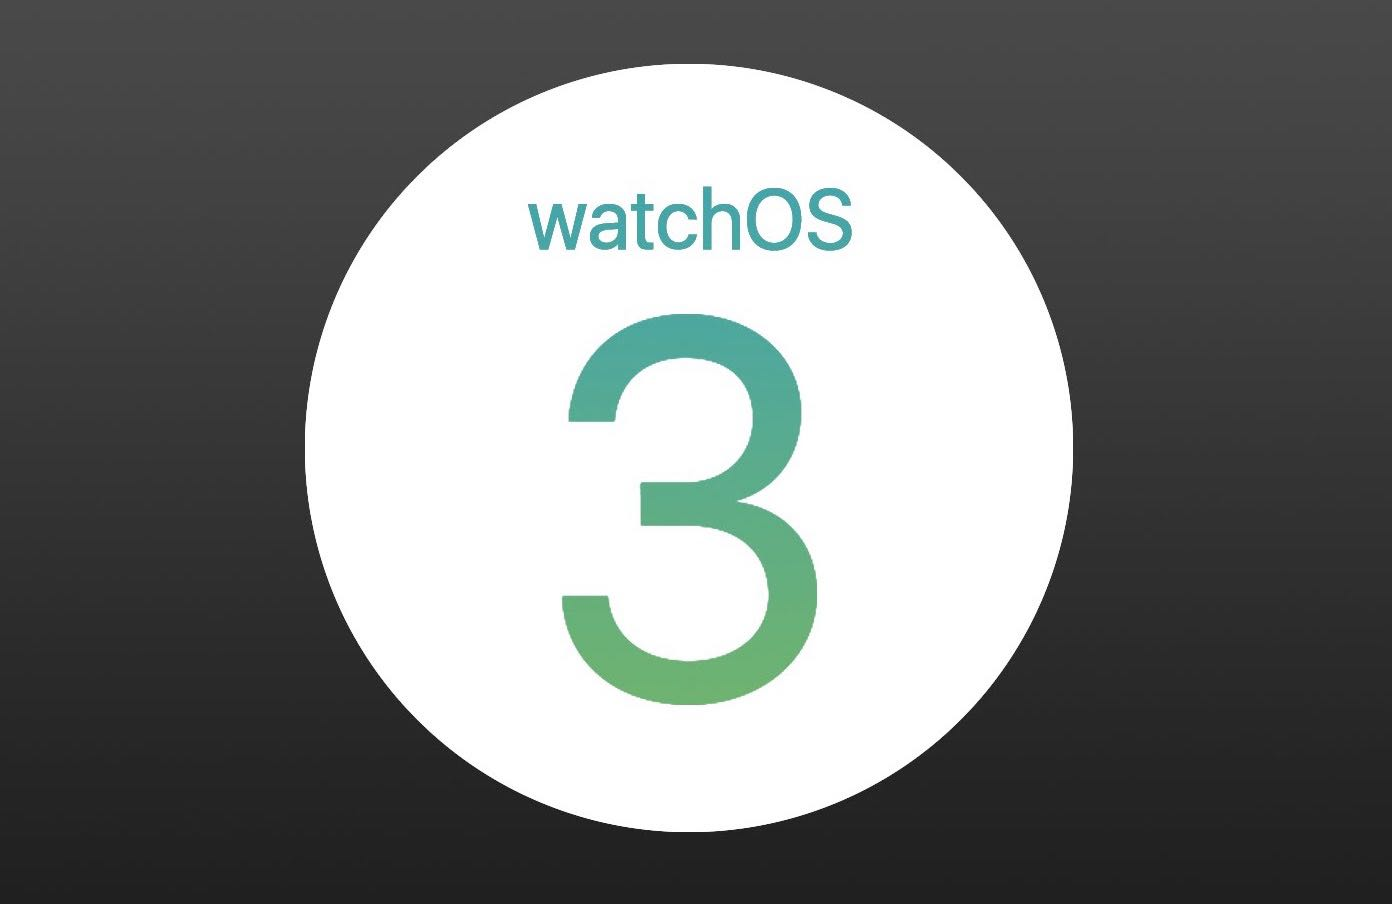 watchOS 3 iOS 10 tvOS 10 3